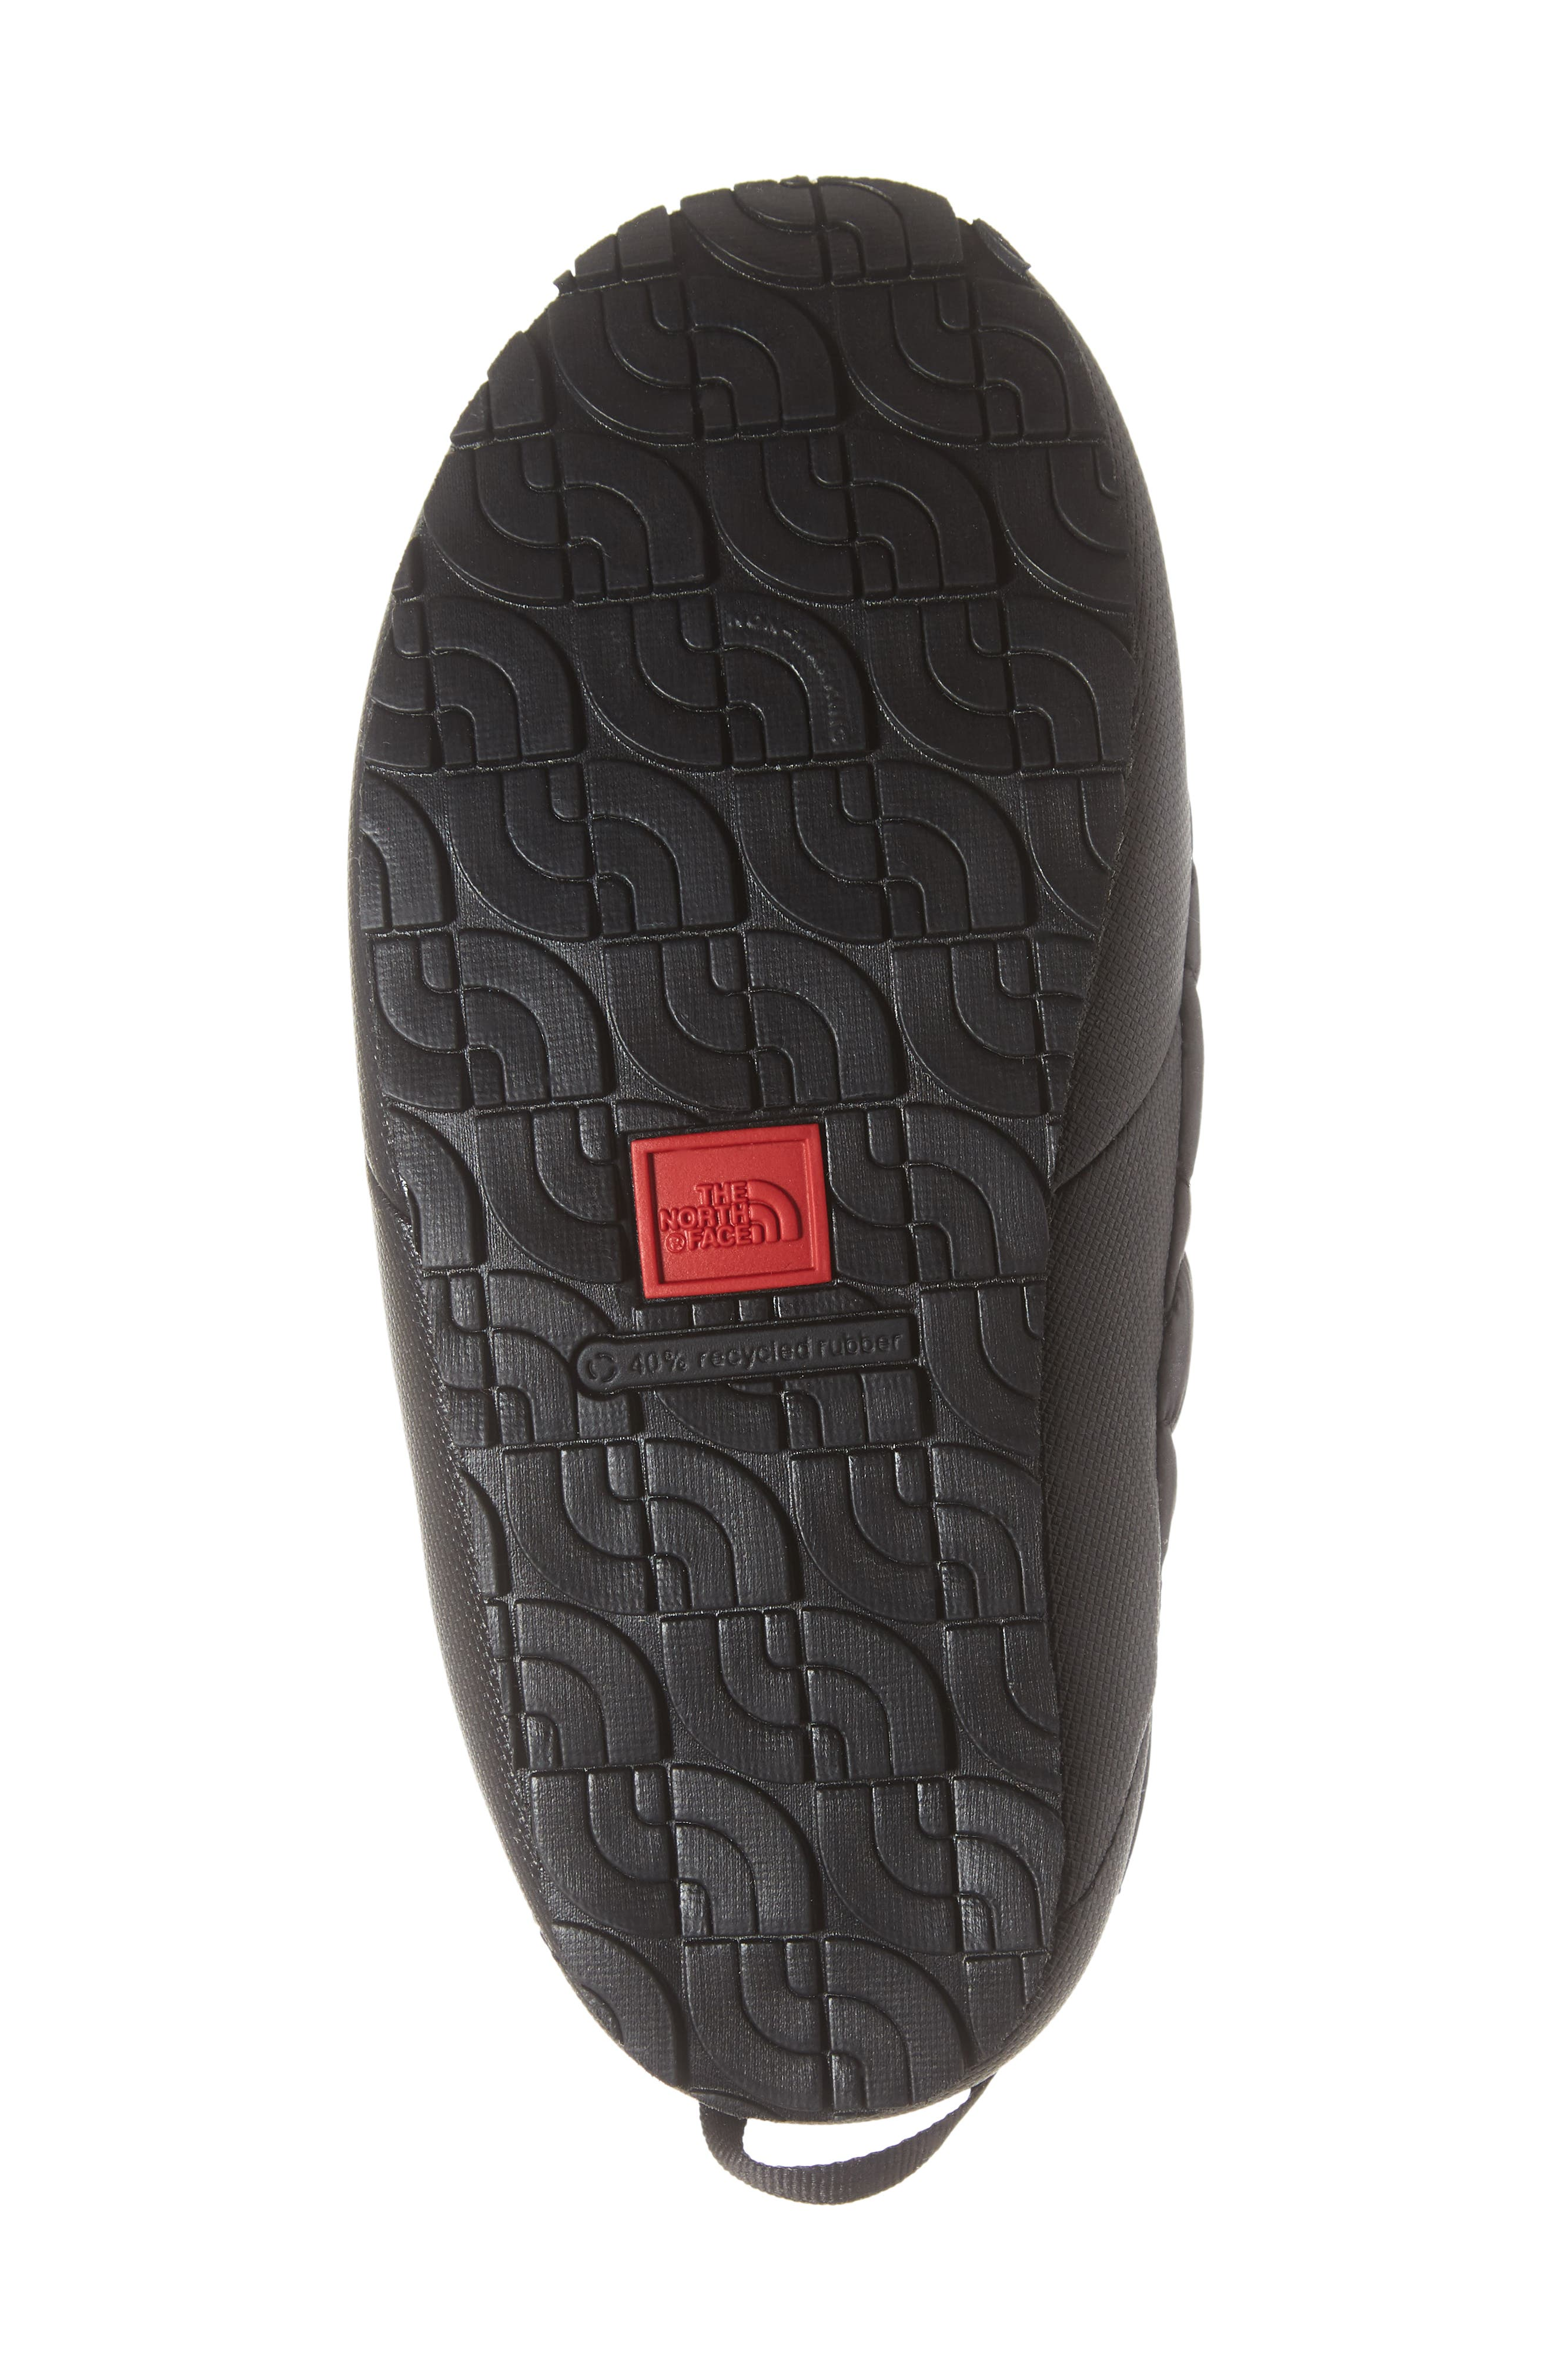 THE NORTH FACE, Thermoball<sup>™</sup> Water Resistant Traction Mule, Alternate thumbnail 6, color, SHINY BLACK/ BELUGA GREY